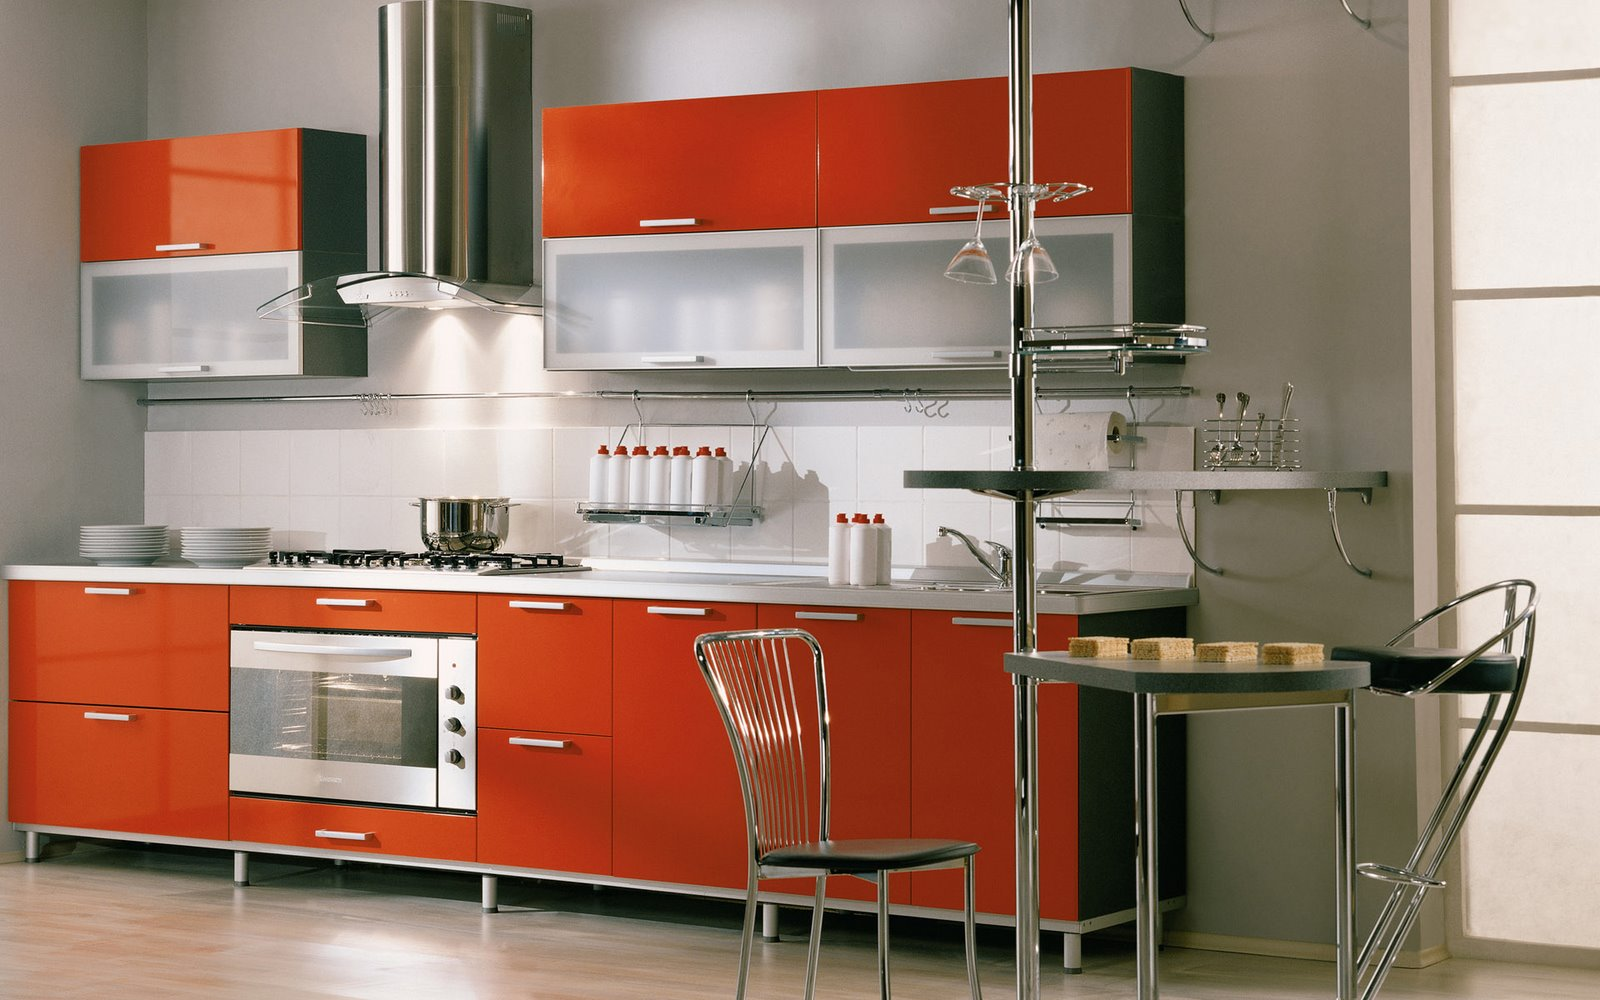 italian kitchen design red open layout fitted cabinets chrome chimney sleek modern elegant look